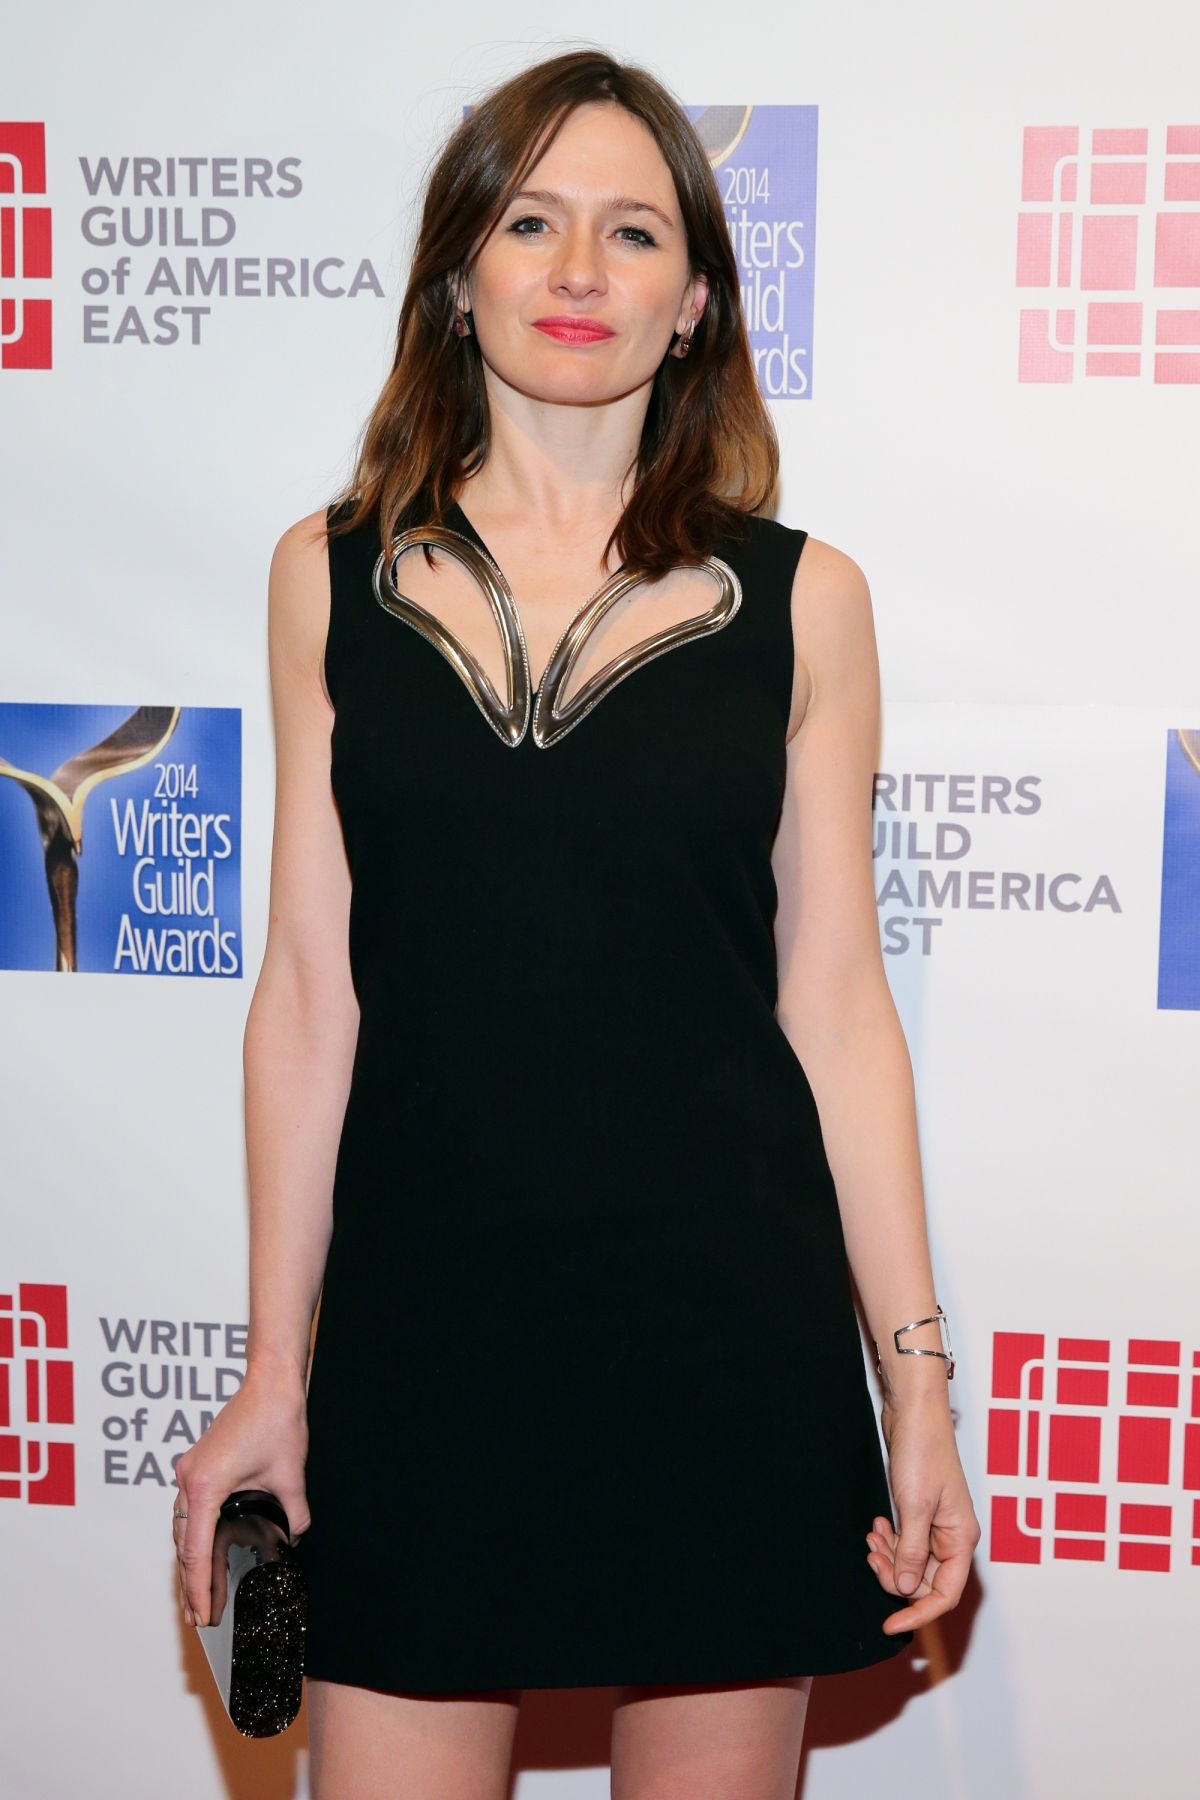 EMILY MORTIMER at 2014 Writers Guild Awards in New York